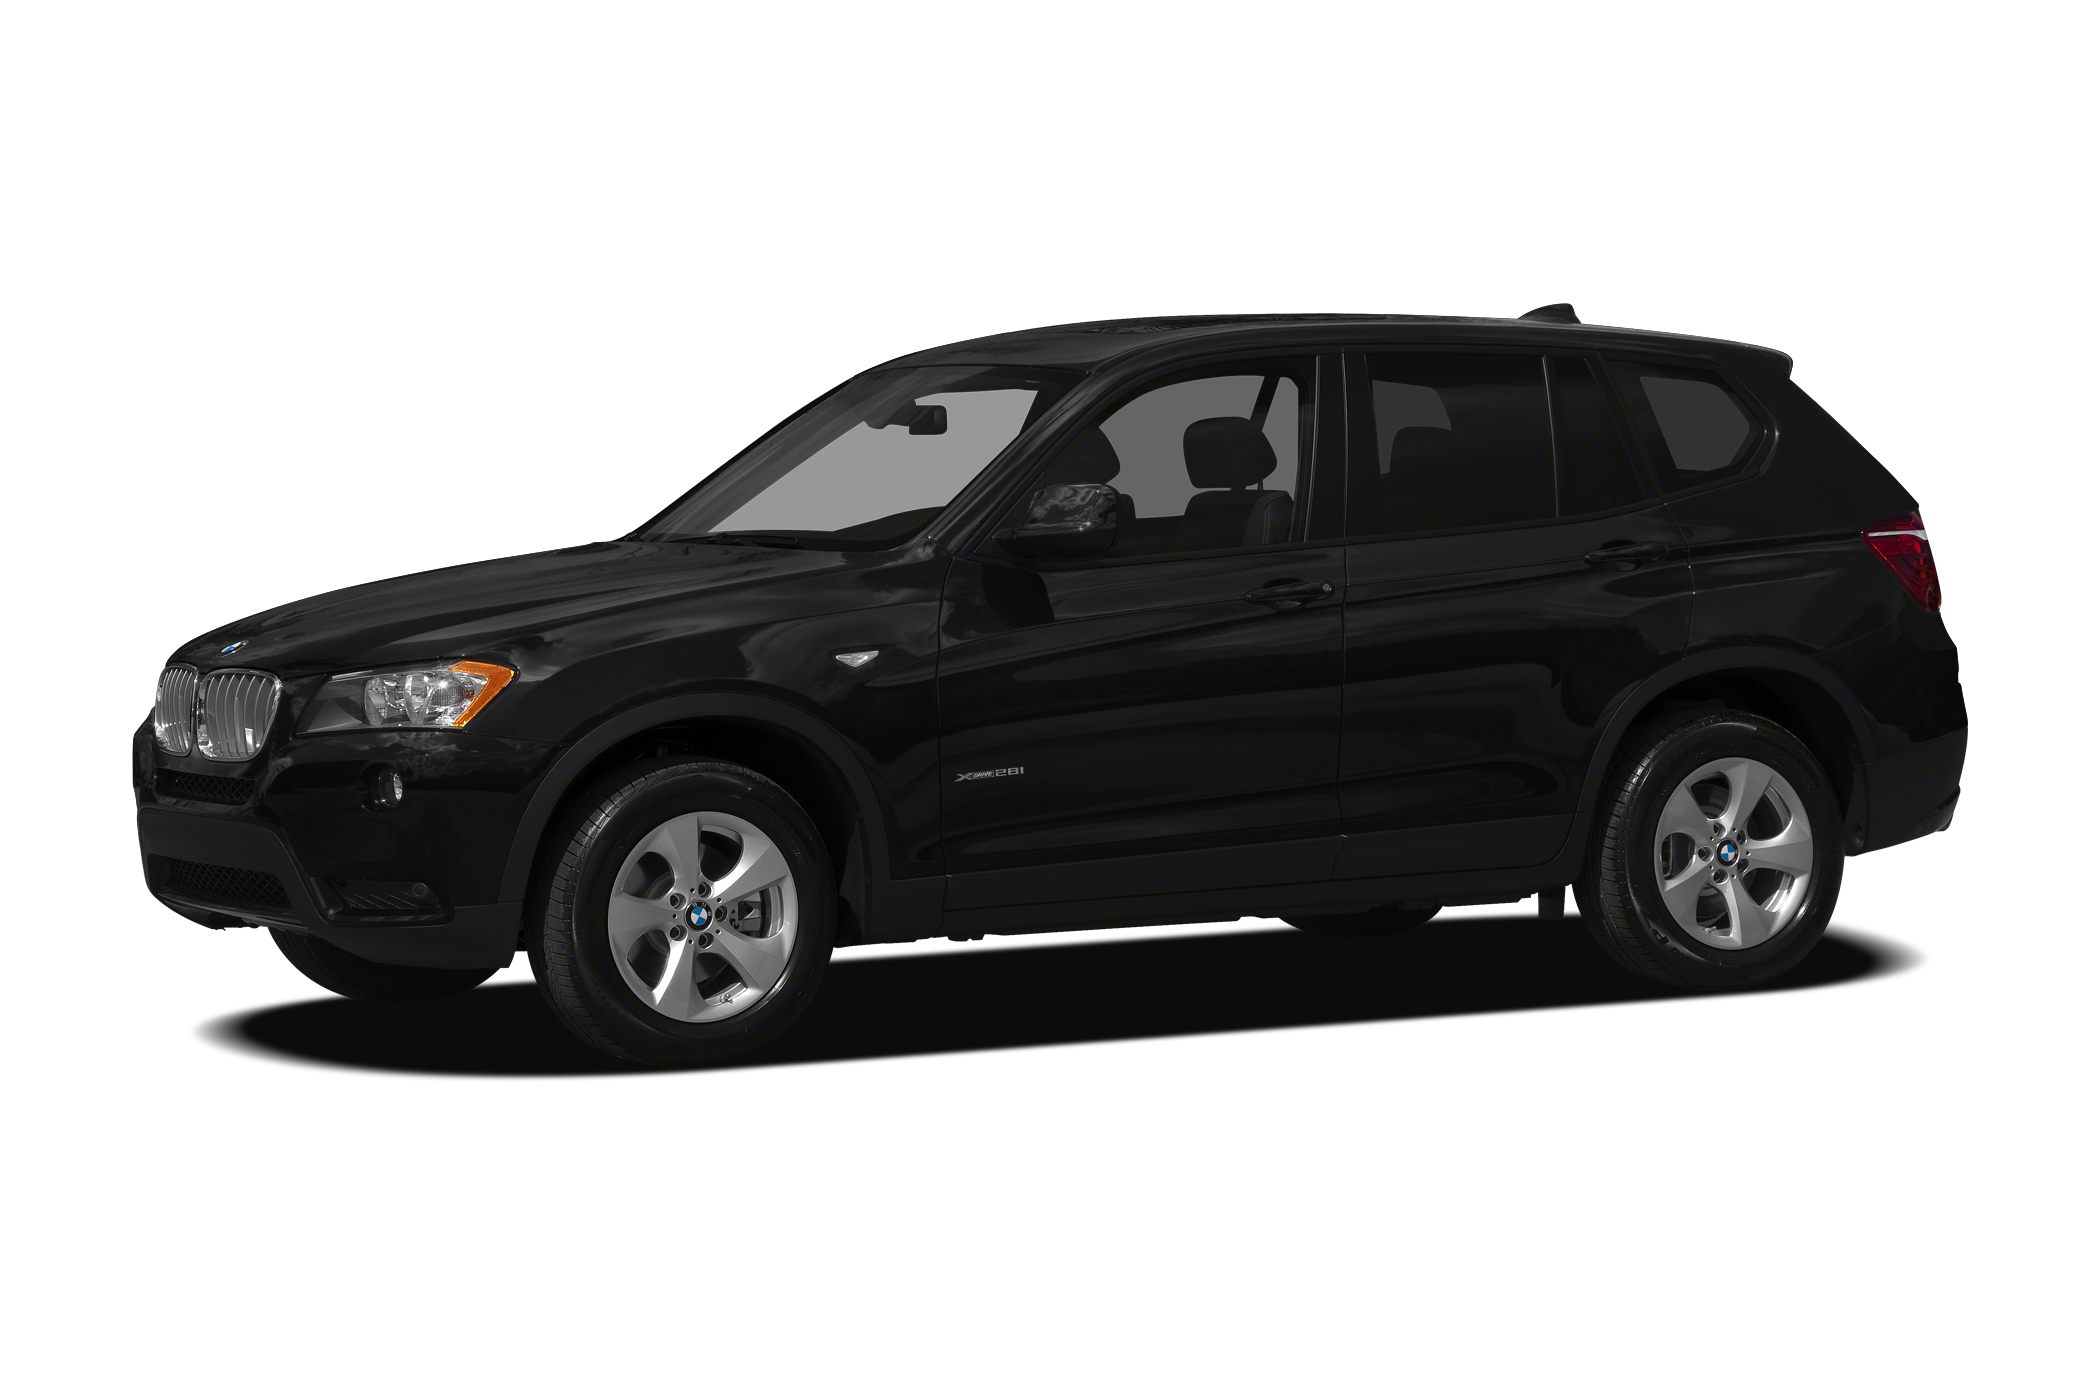 2012 BMW X3 XDrive28i SUV for sale in Vista for $32,998 with 35,468 miles